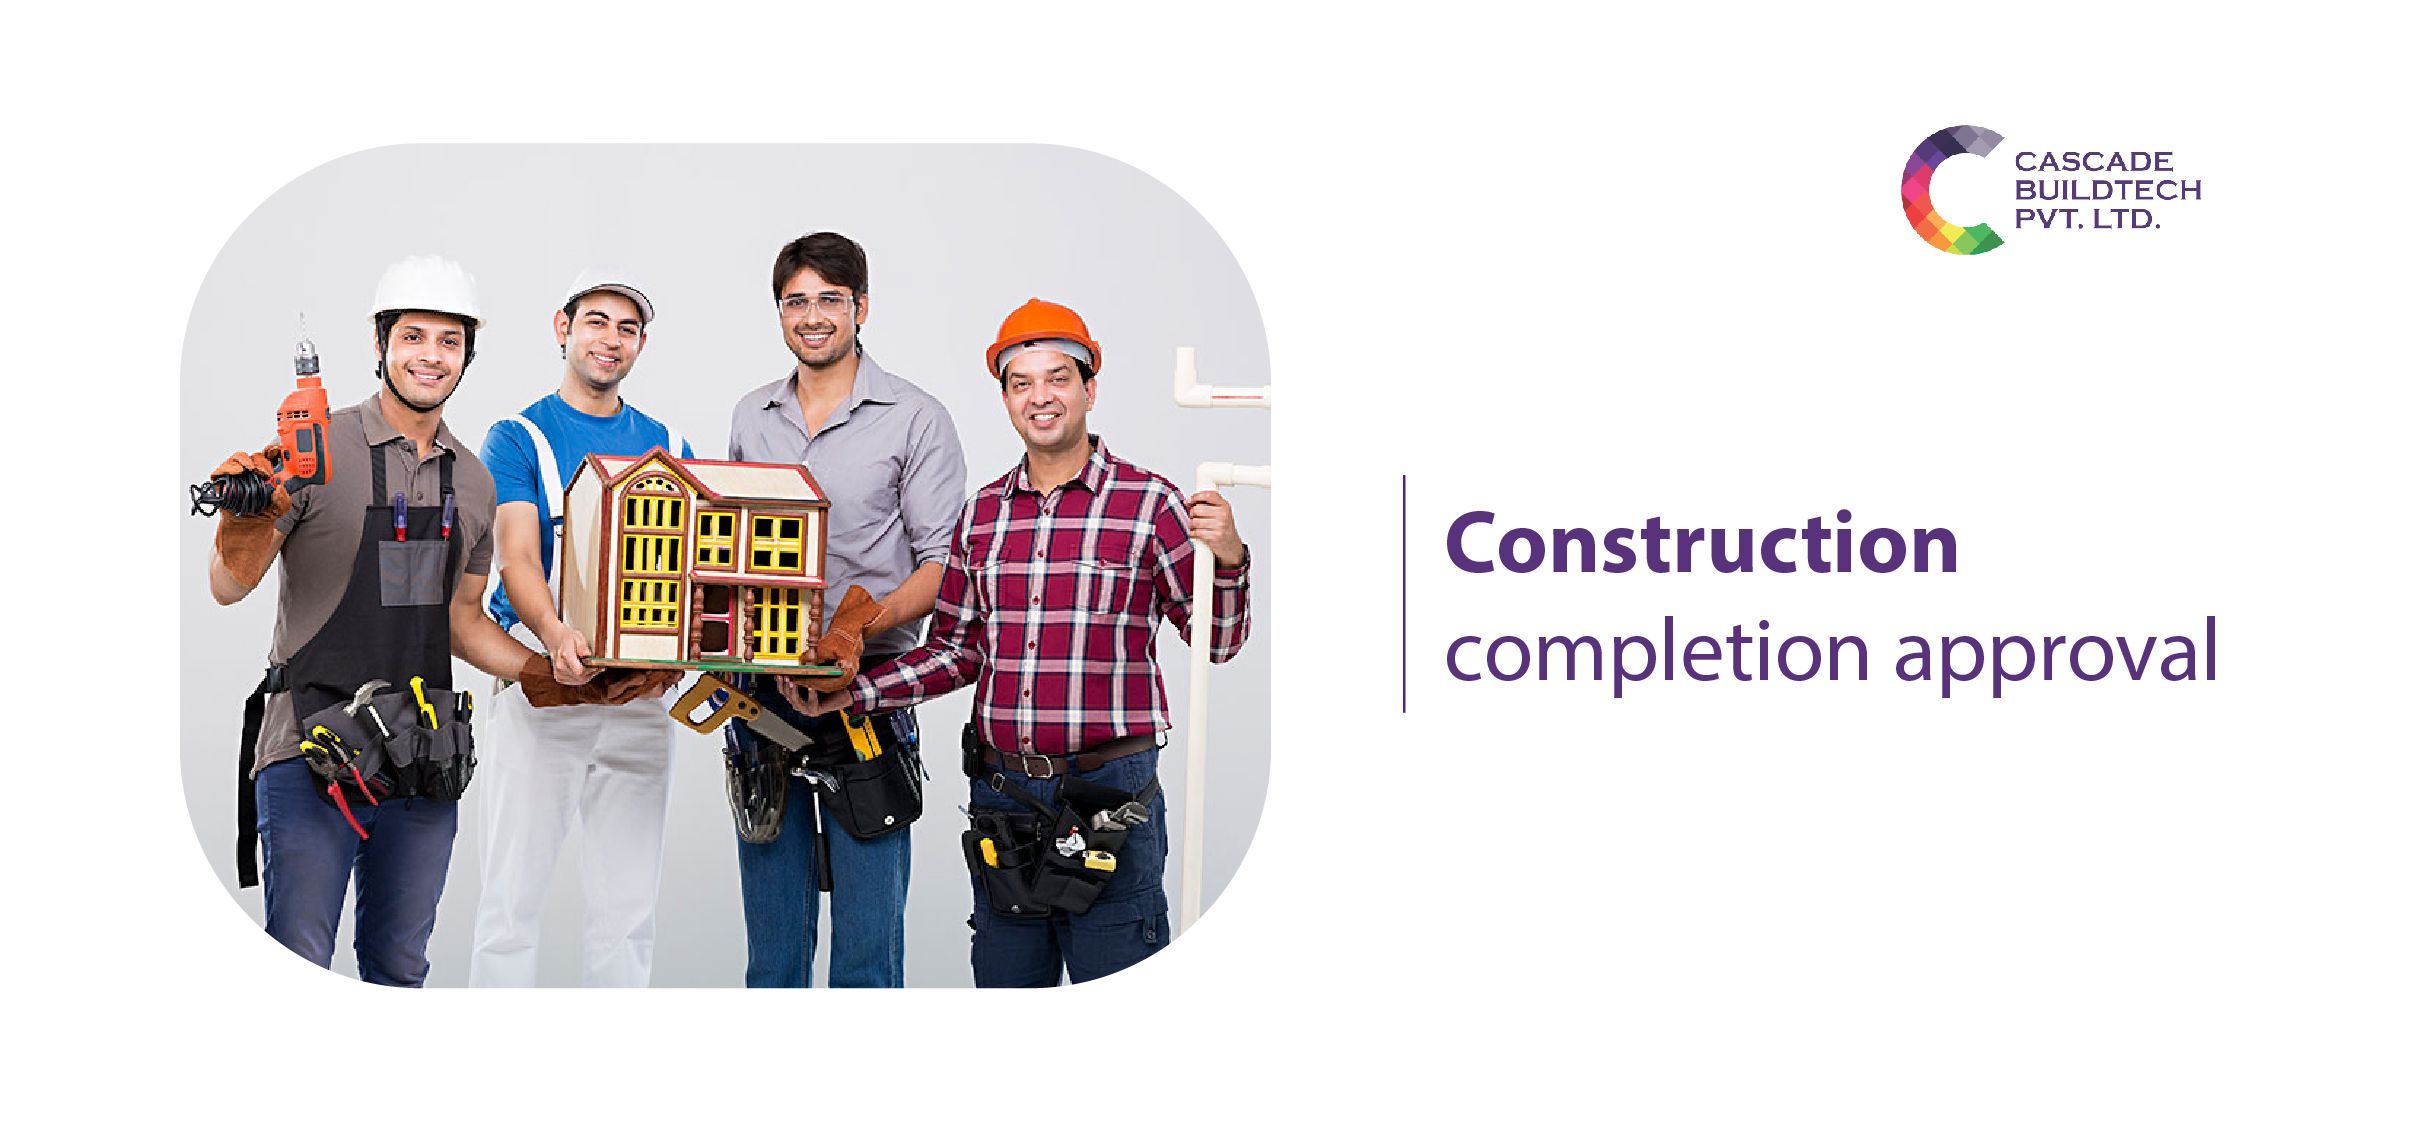 Constructio-completion-approval-of-property